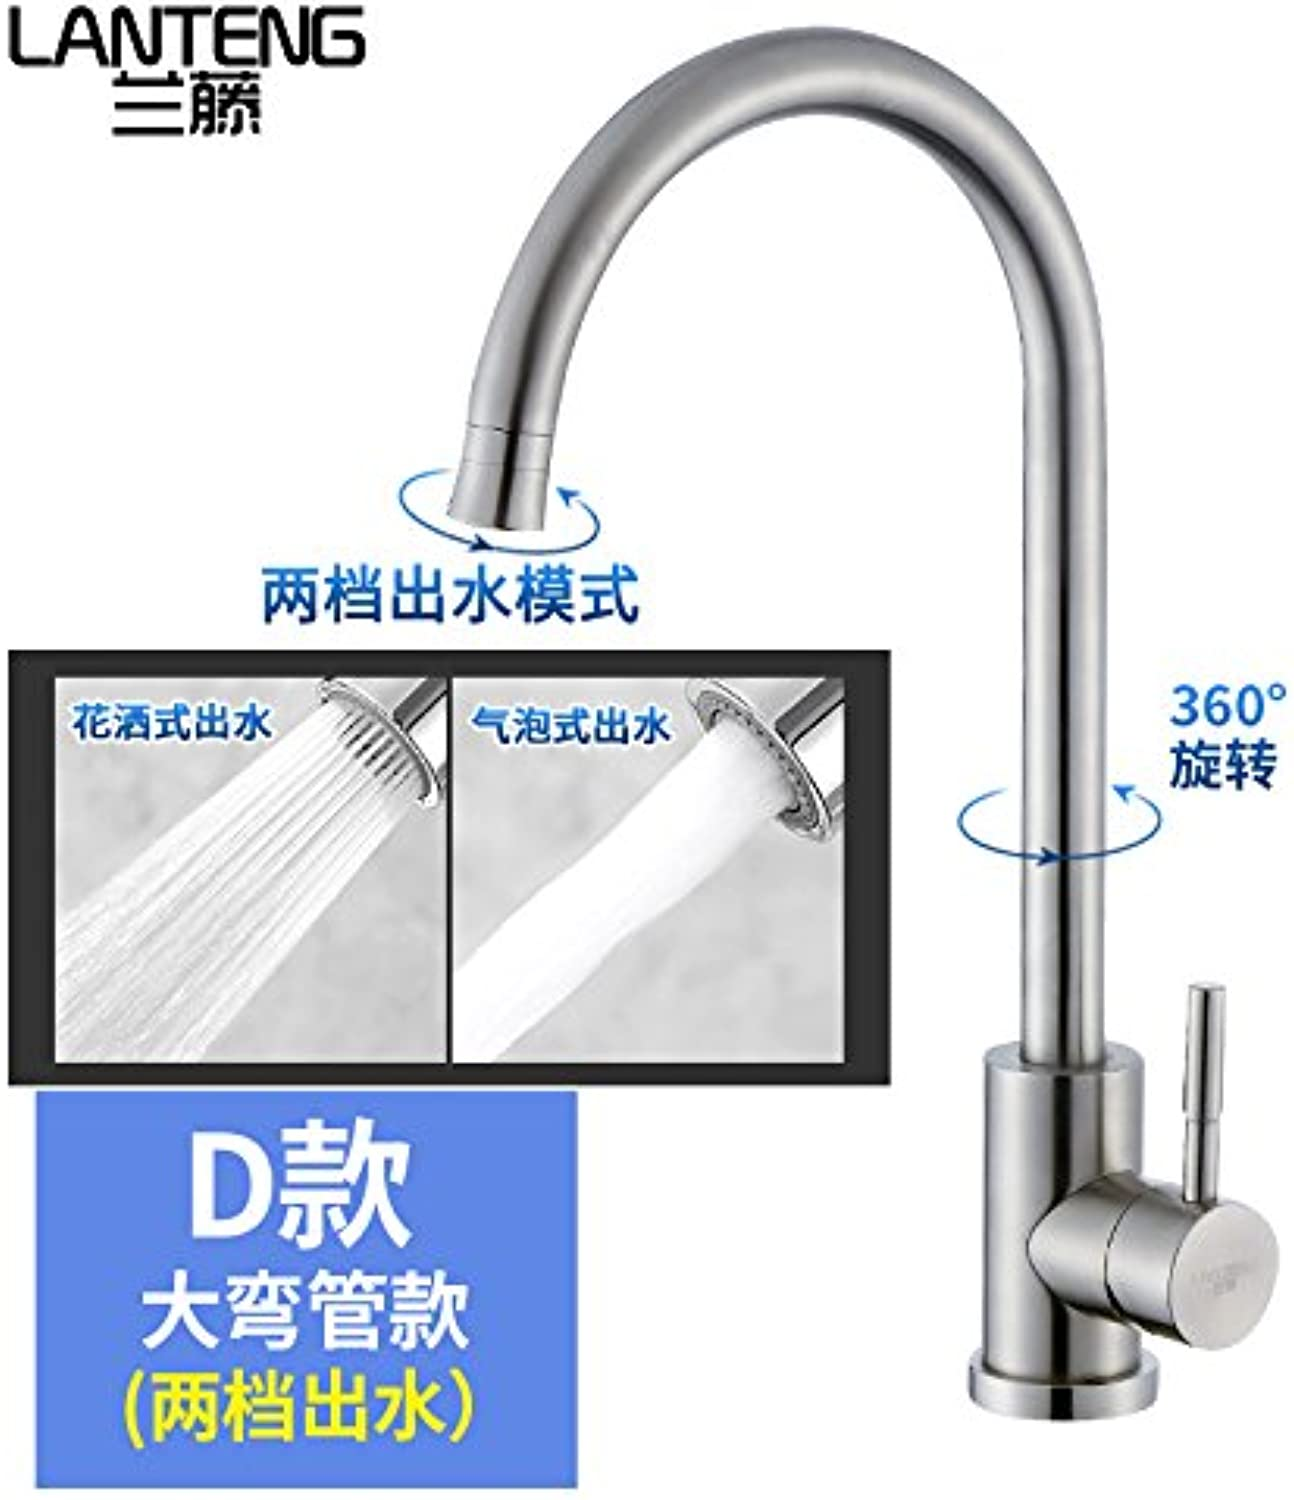 Commercial Single Lever Pull Down Kitchen Sink Faucet Brass Constructed Polished Lantern 304 Stainless Steel Kitchen Sink hot and Cold Faucet Sink Sink Faucet Brushed,D (Double Gear) Big Curved